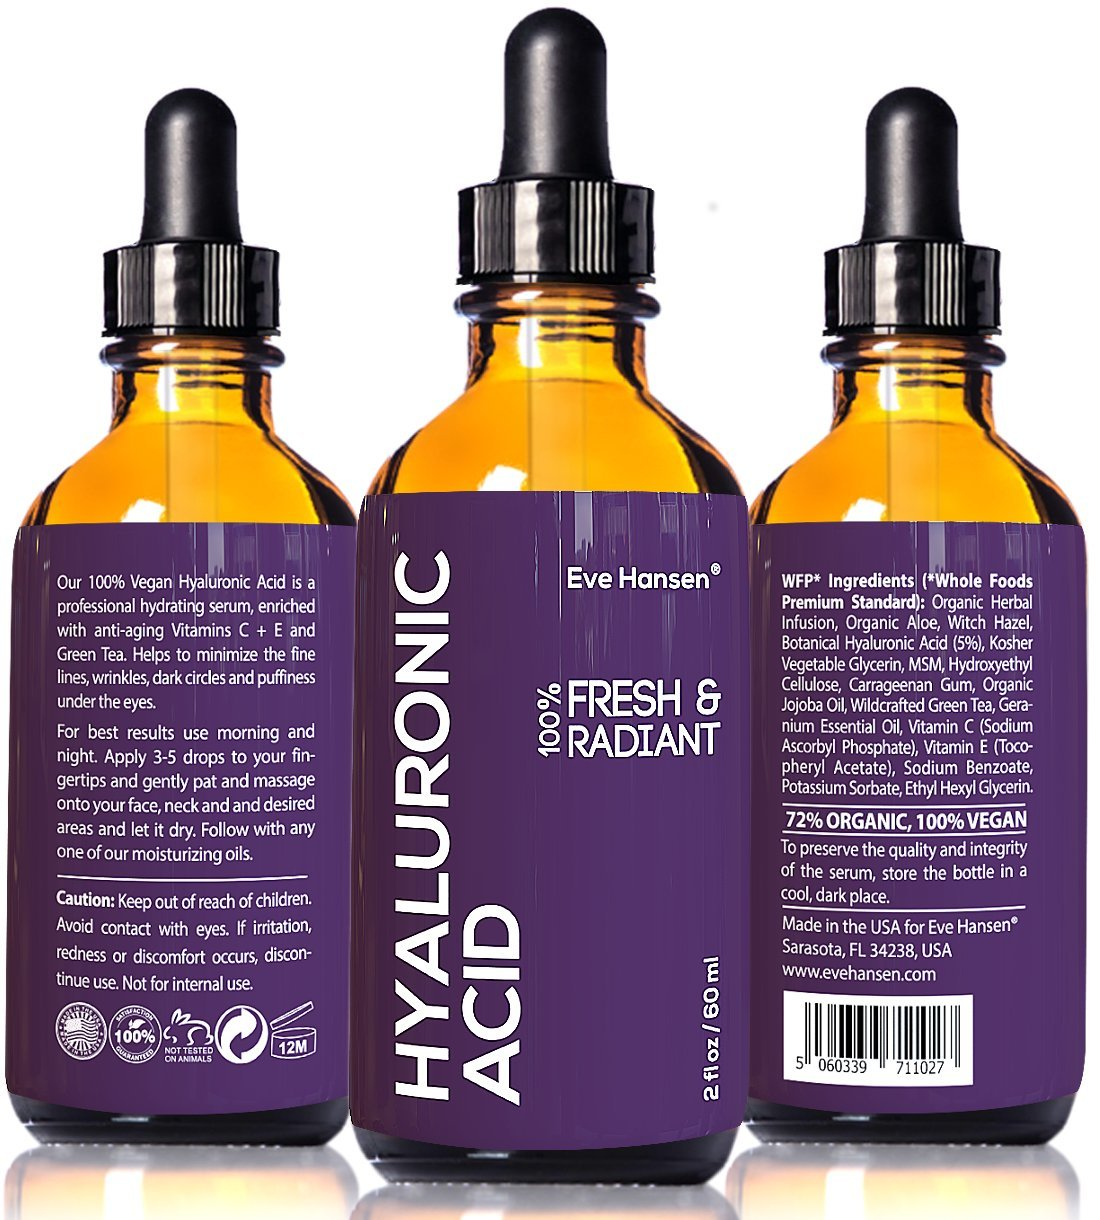 Pure Hyaluronic Acid Serum 2 Ounces by Eve Hansen. Hydrating Serum, Wrinkle Filler and Plumper. Experience Intense Moisture, Hydration and Anti Wrinkle Serum Benefits. Vegan, Natural and Cruelty Free.